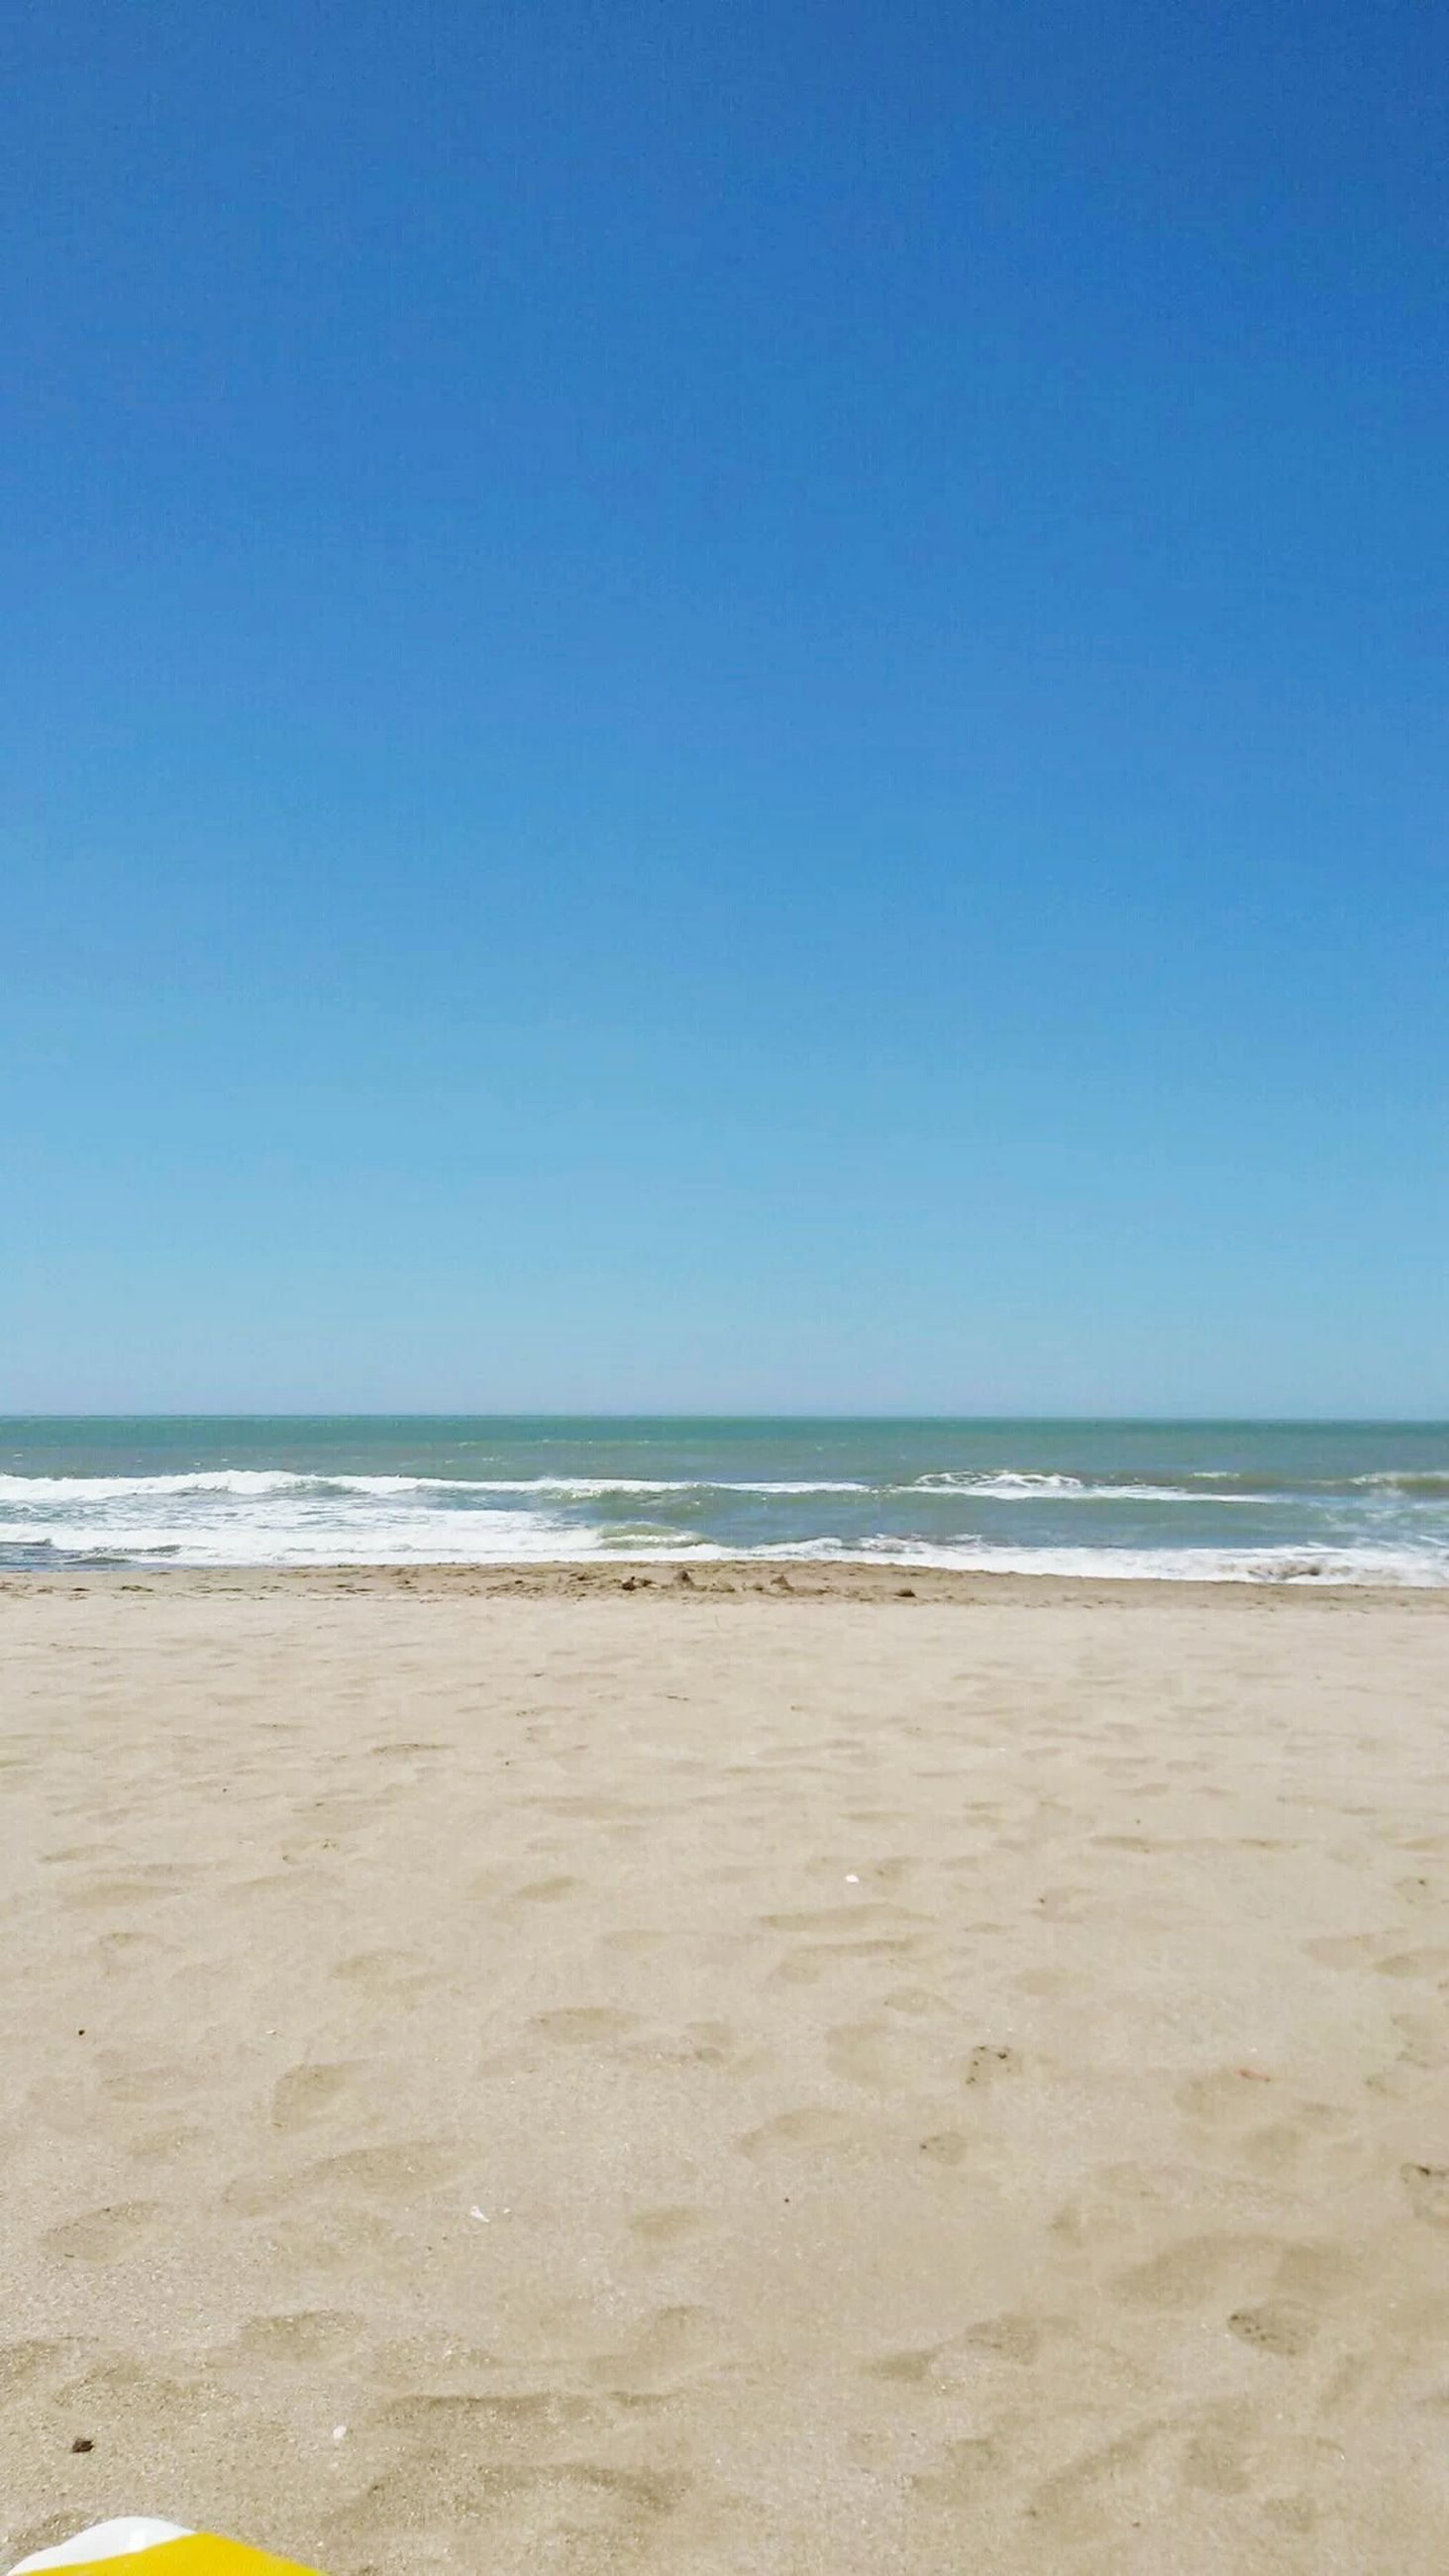 clear sky, sea, copy space, horizon over water, beach, sand, water, shore, blue, tranquil scene, tranquility, scenics, beauty in nature, nature, idyllic, outdoors, day, calm, remote, wave